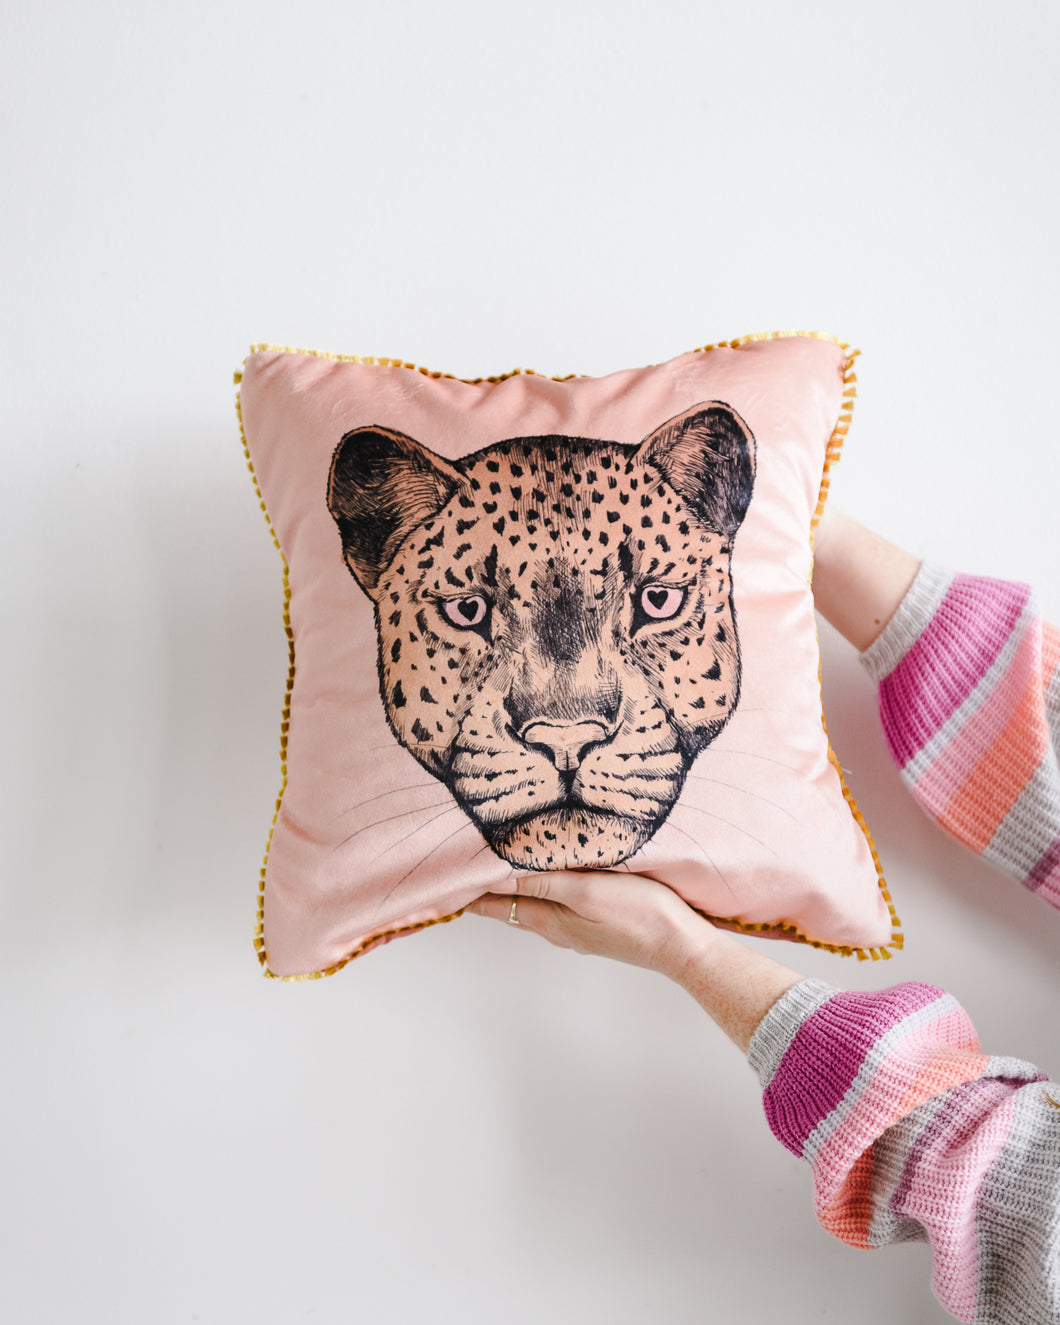 The Grumpy Leopard Cushion